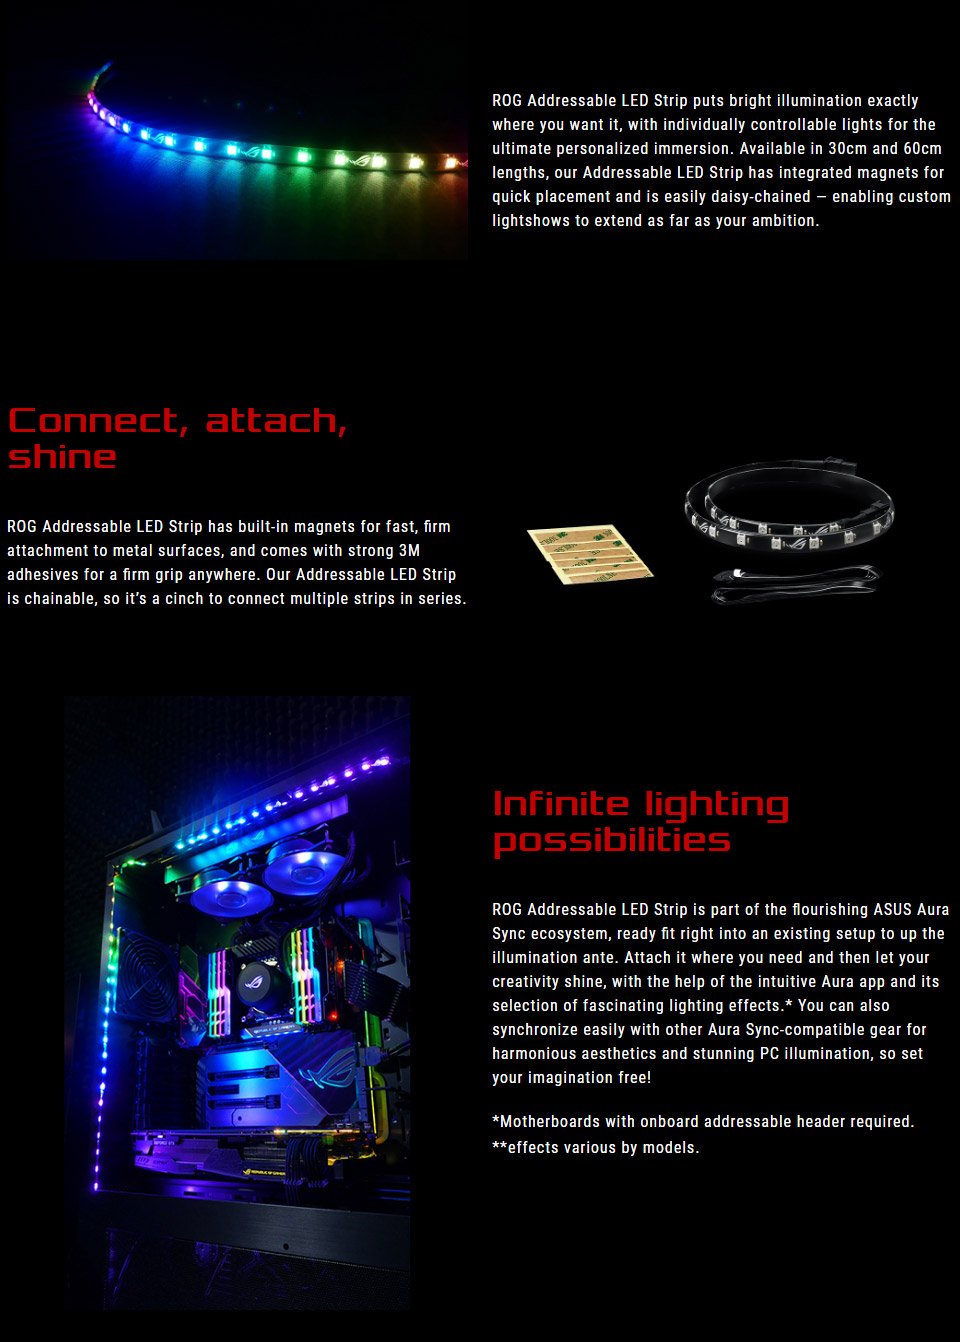 Measuring 60cm in length ASUSu0027 Addressable LED Strip has integrated magnets for quick placement and is easily daisy-chained u2014 enabling custom lightshows to ...  sc 1 st  PC Case Gear & ASUS ROG Addressable RGB Strip 60cm [ROG-LED-STRIP-60CM] : PC Case Gear